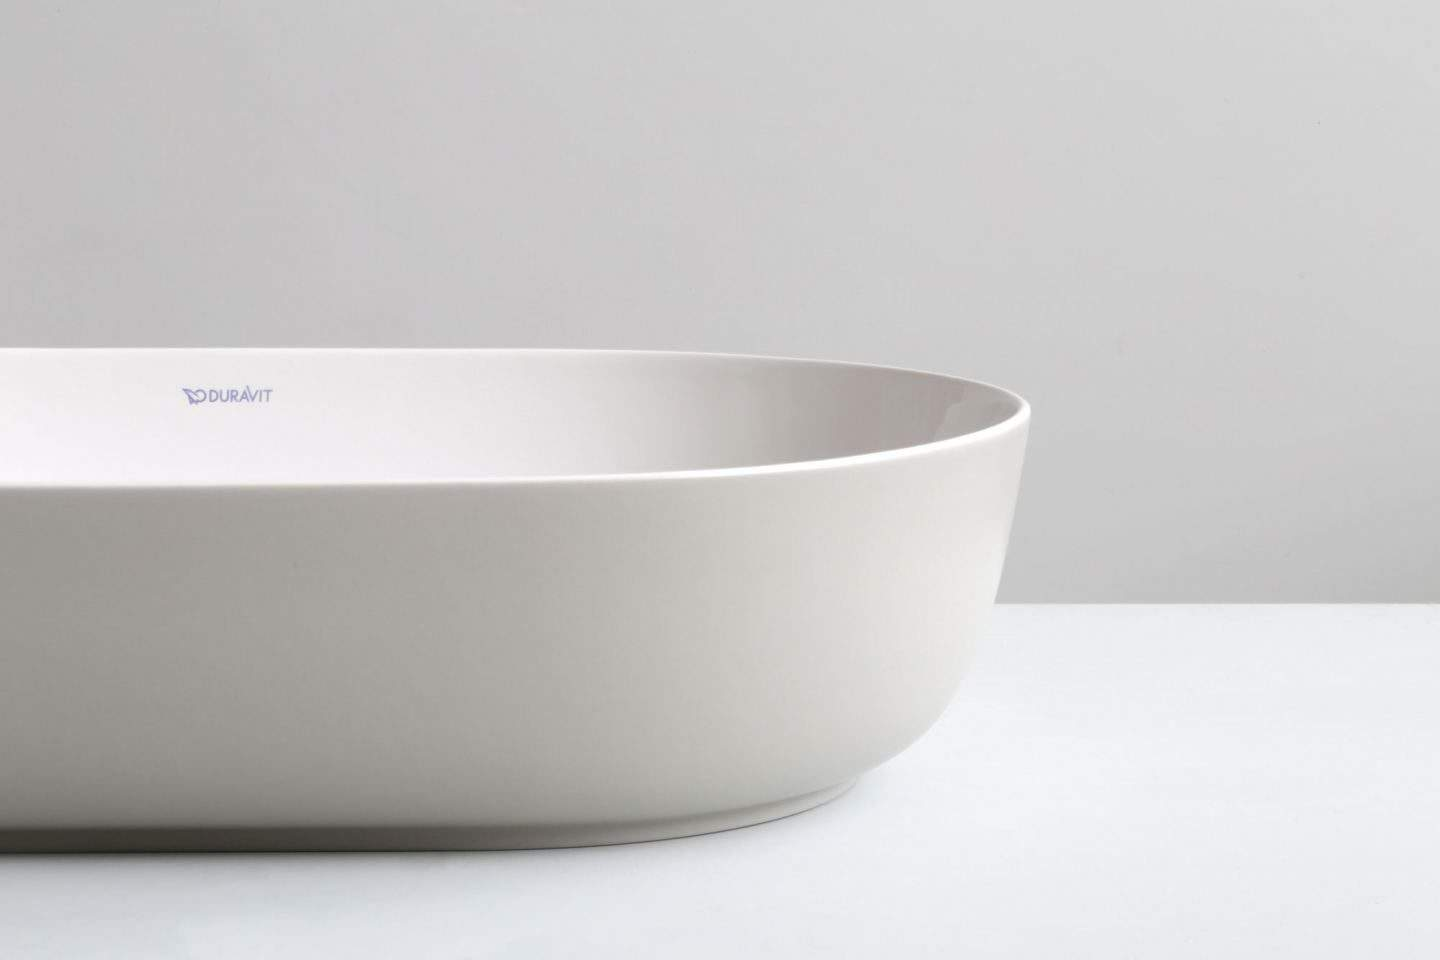 A close up of the basin from The Luv collection by luxury bathroom brand Duravit.